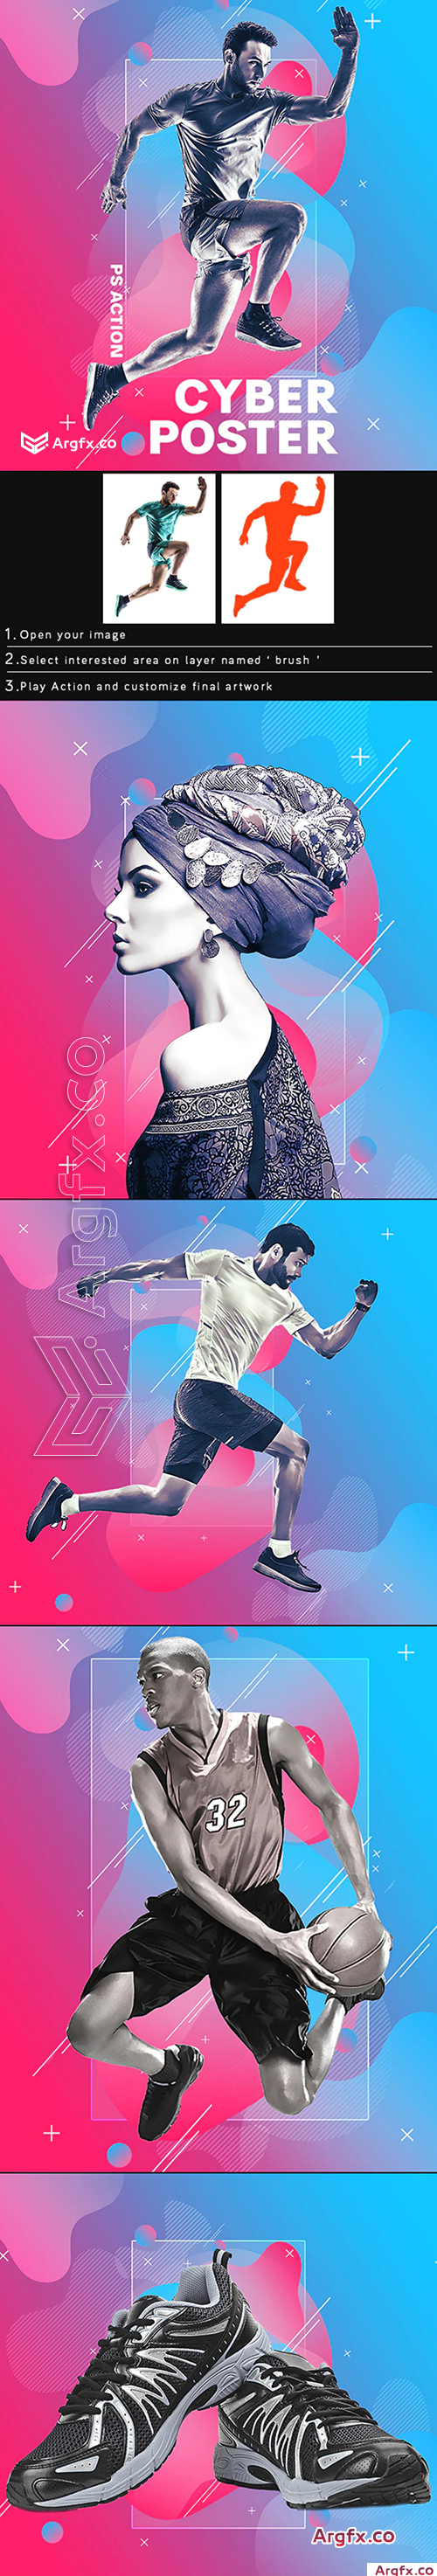 GraphicRiver - Cyber Poster Photoshop Action 25597014